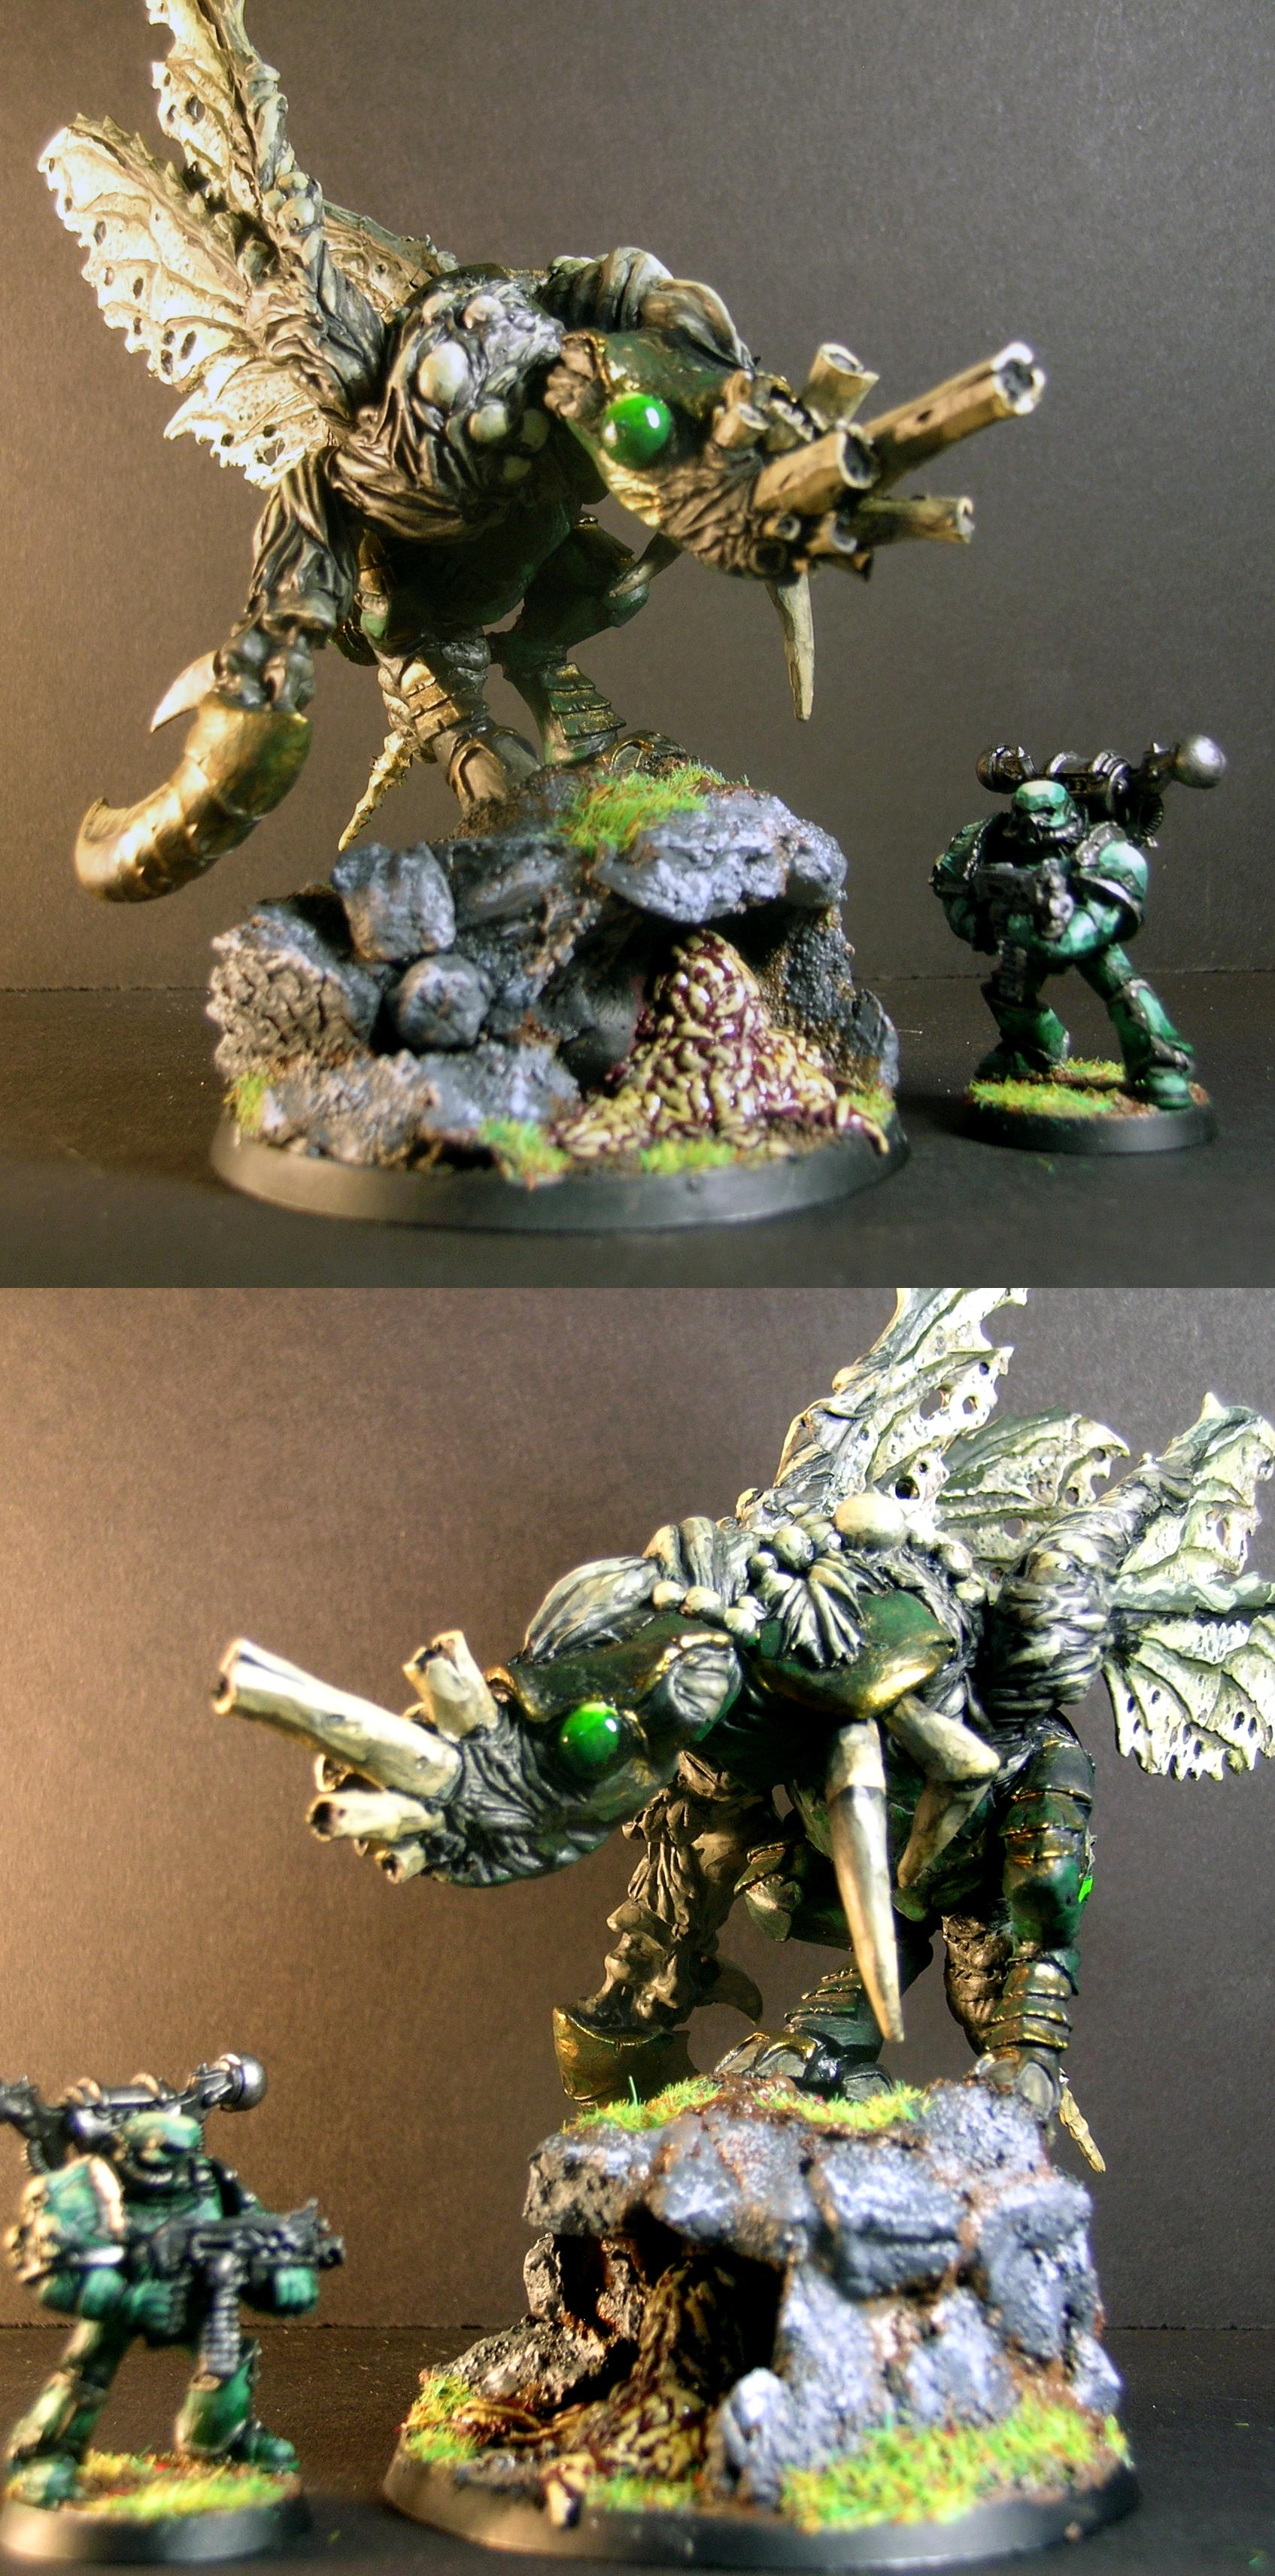 Bug, Cave, Chaos Daemons, Daemon Prince, Daemons, Death Guard, Insect, Nurgle, Plague Marines, Warhammer 40,000, Winged